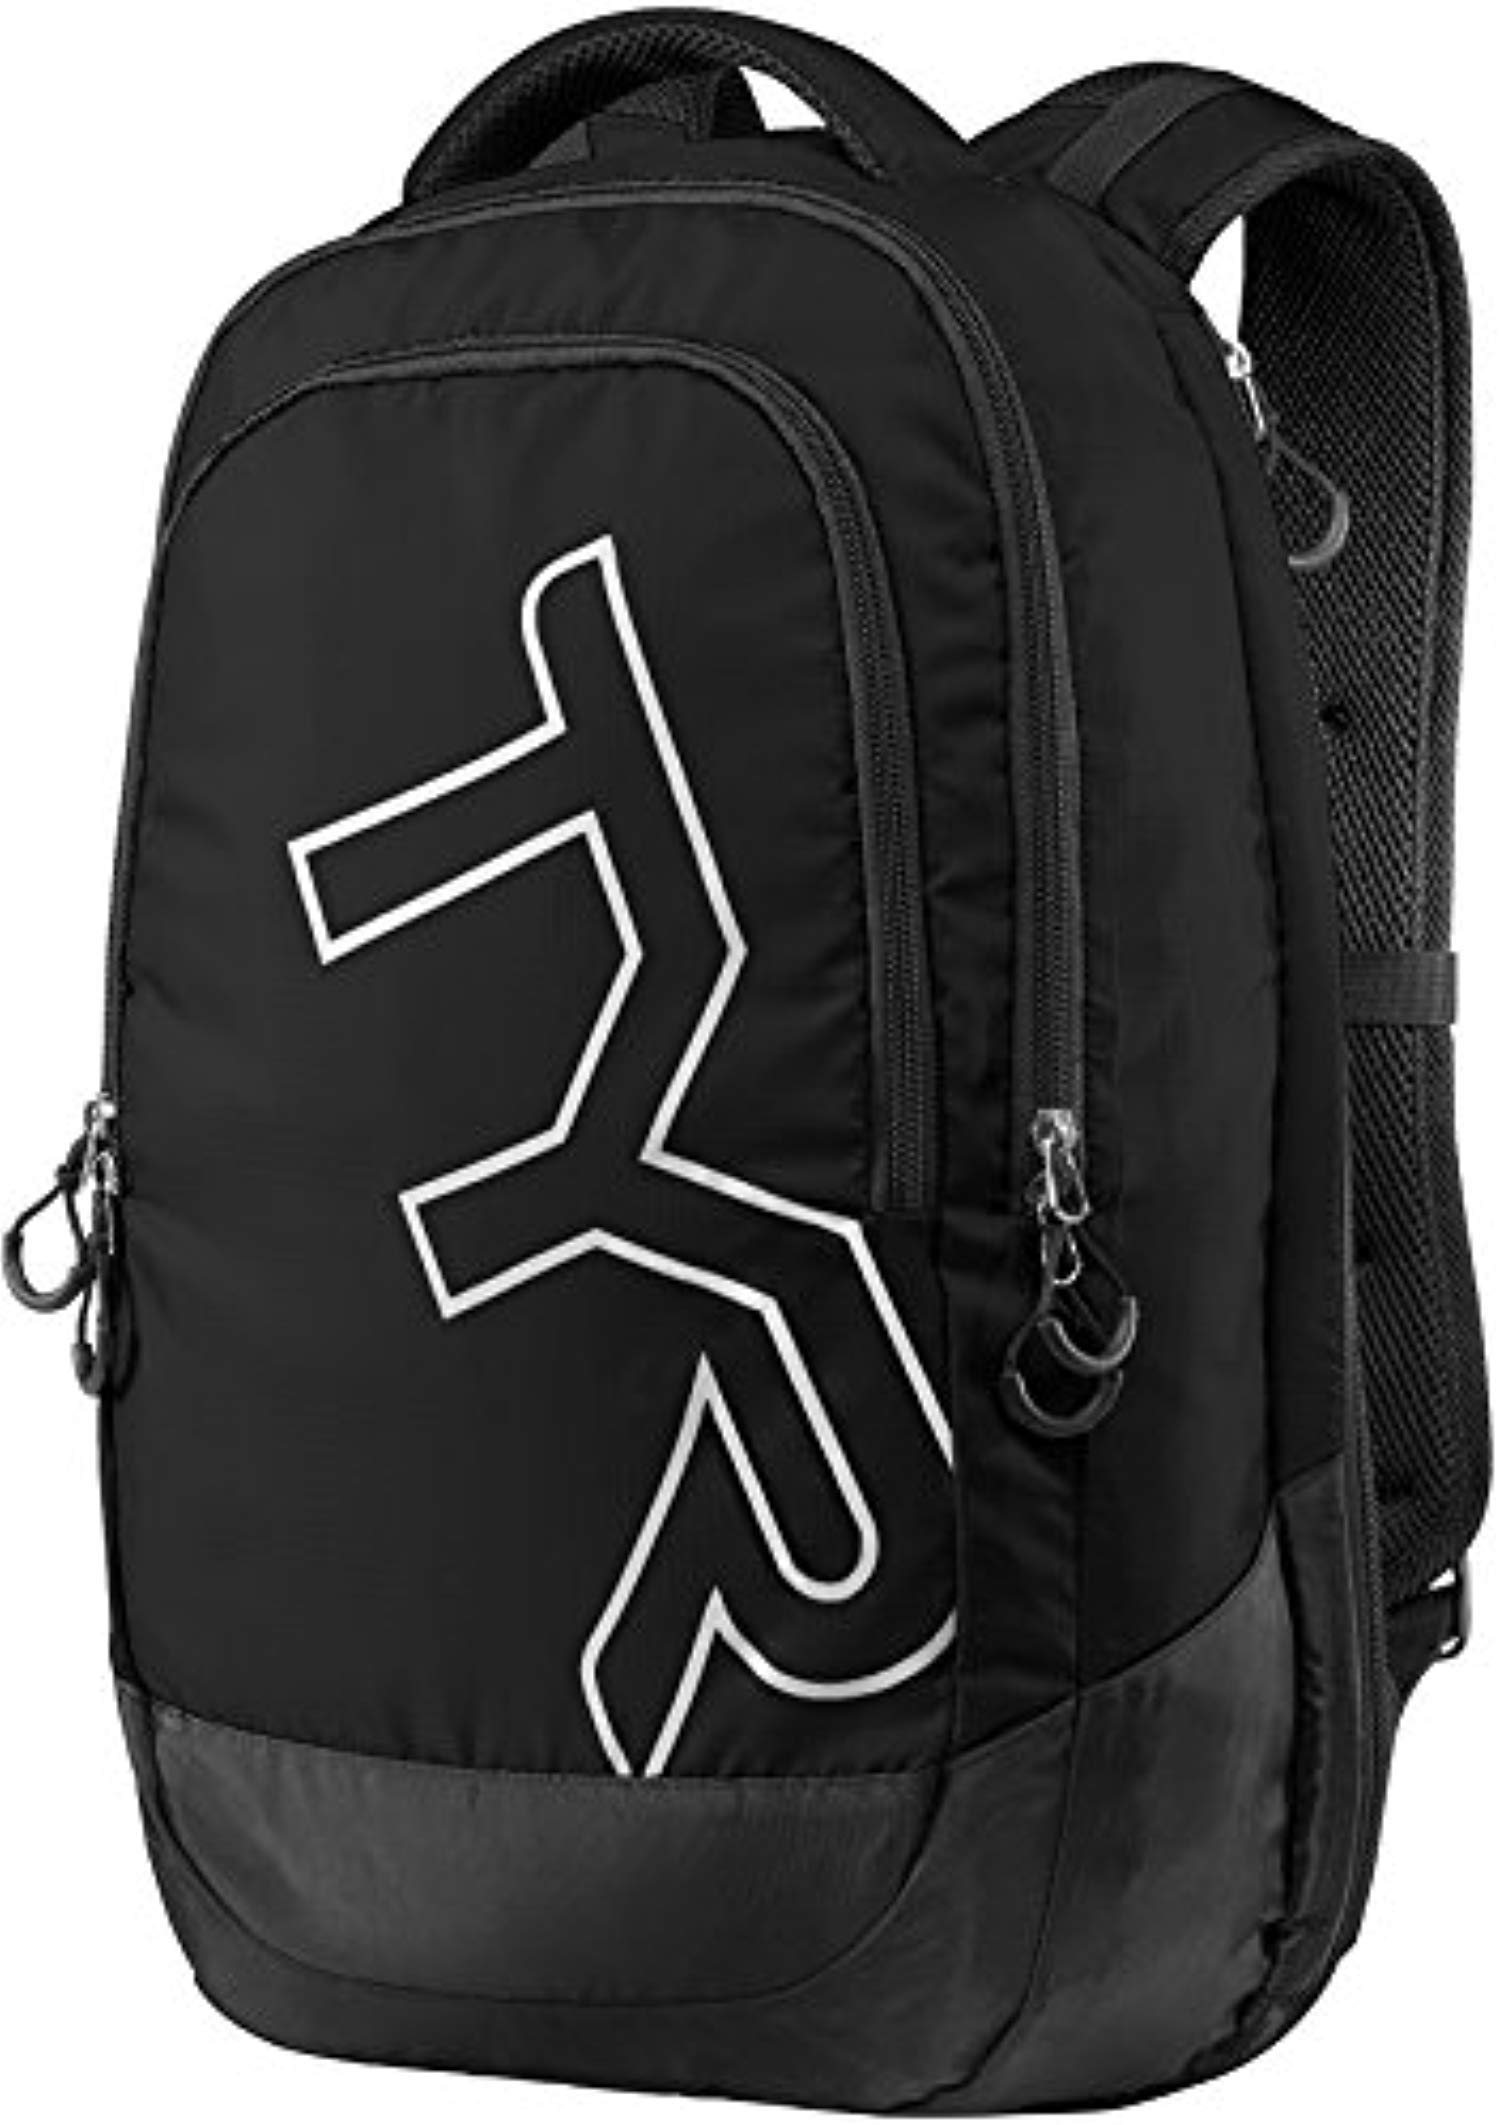 Swim Bundle: TYR Victory Backpack Black All & Swimming Earplugs by Competition Swimwear